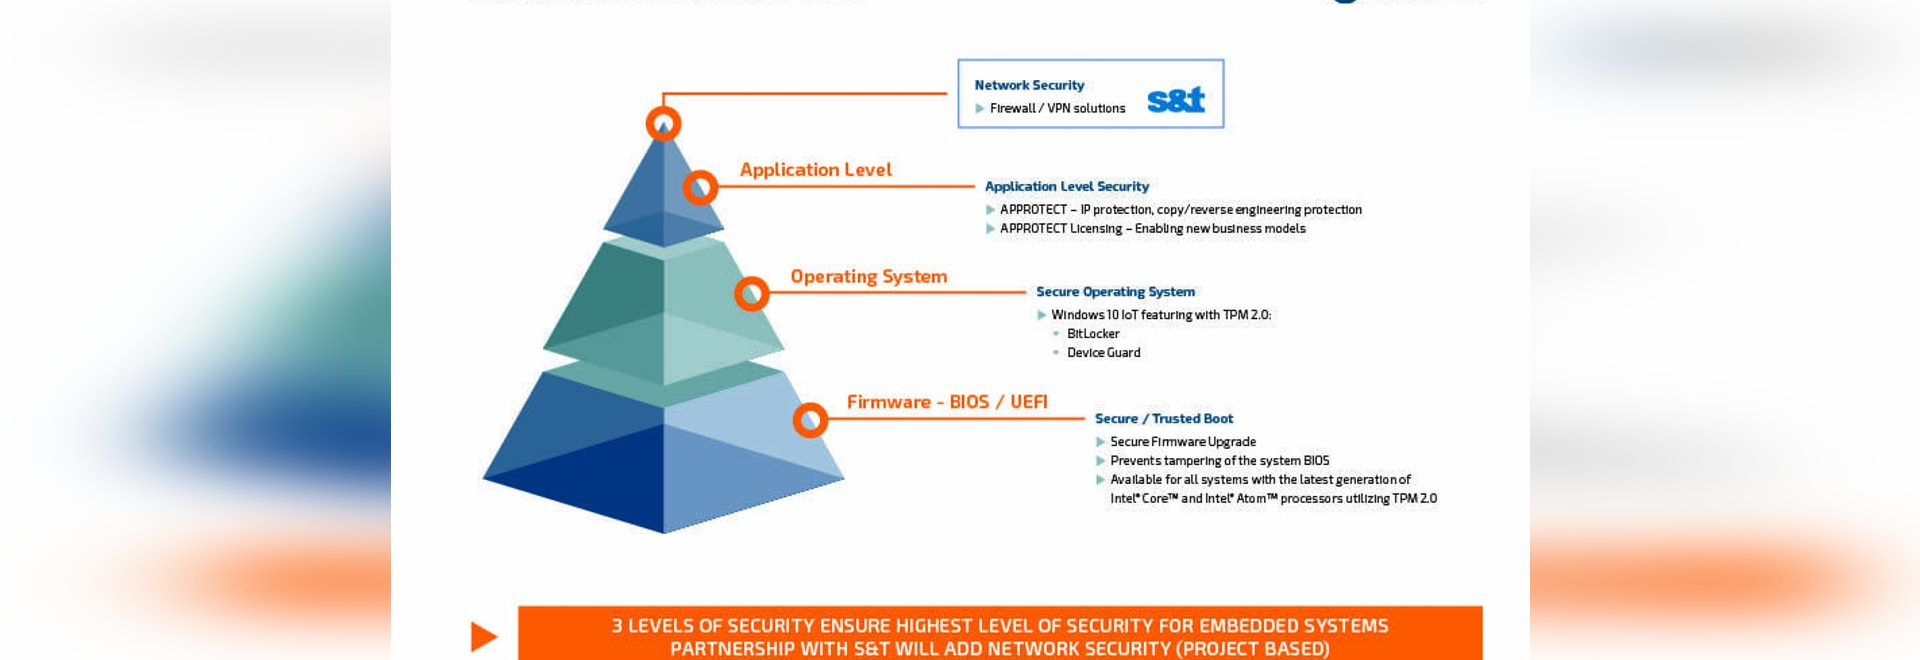 Kontron Introduces Innovative Embedded Security Concept for IoT and Industry 4.0 Environments